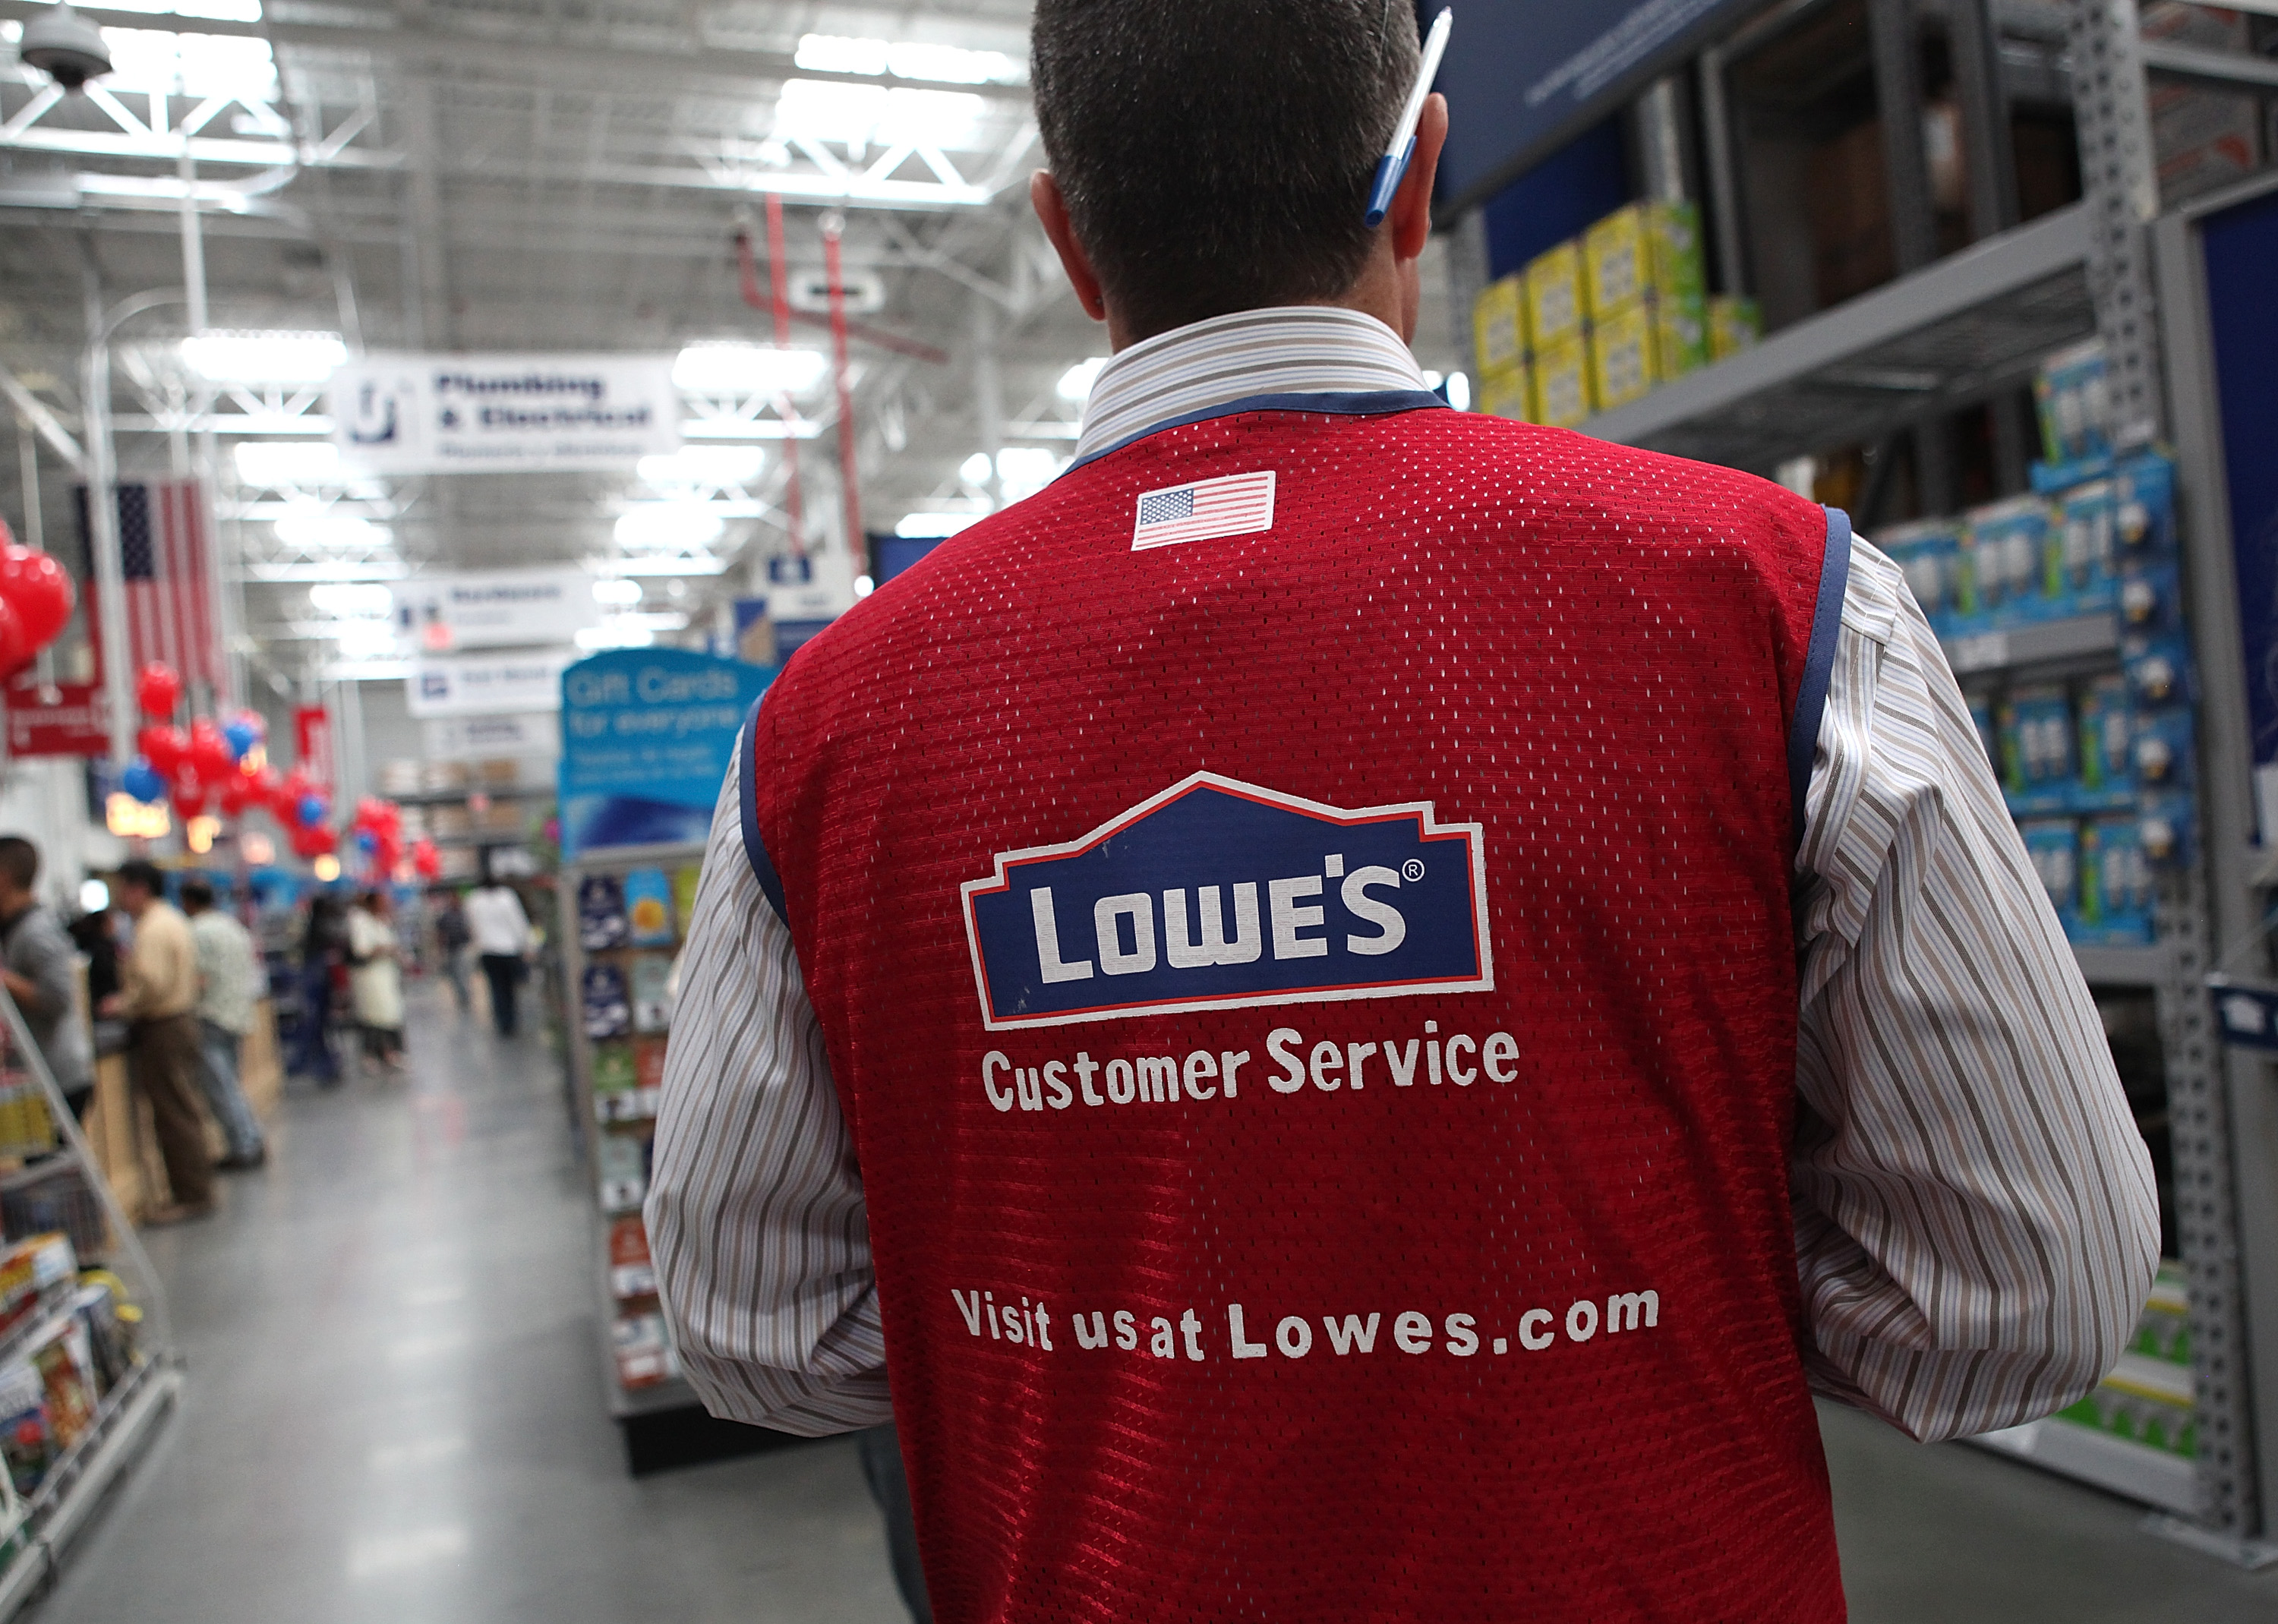 Mayor And Lt. Gov-Elect Newsom Attends A Lowe's Store Grand Opening